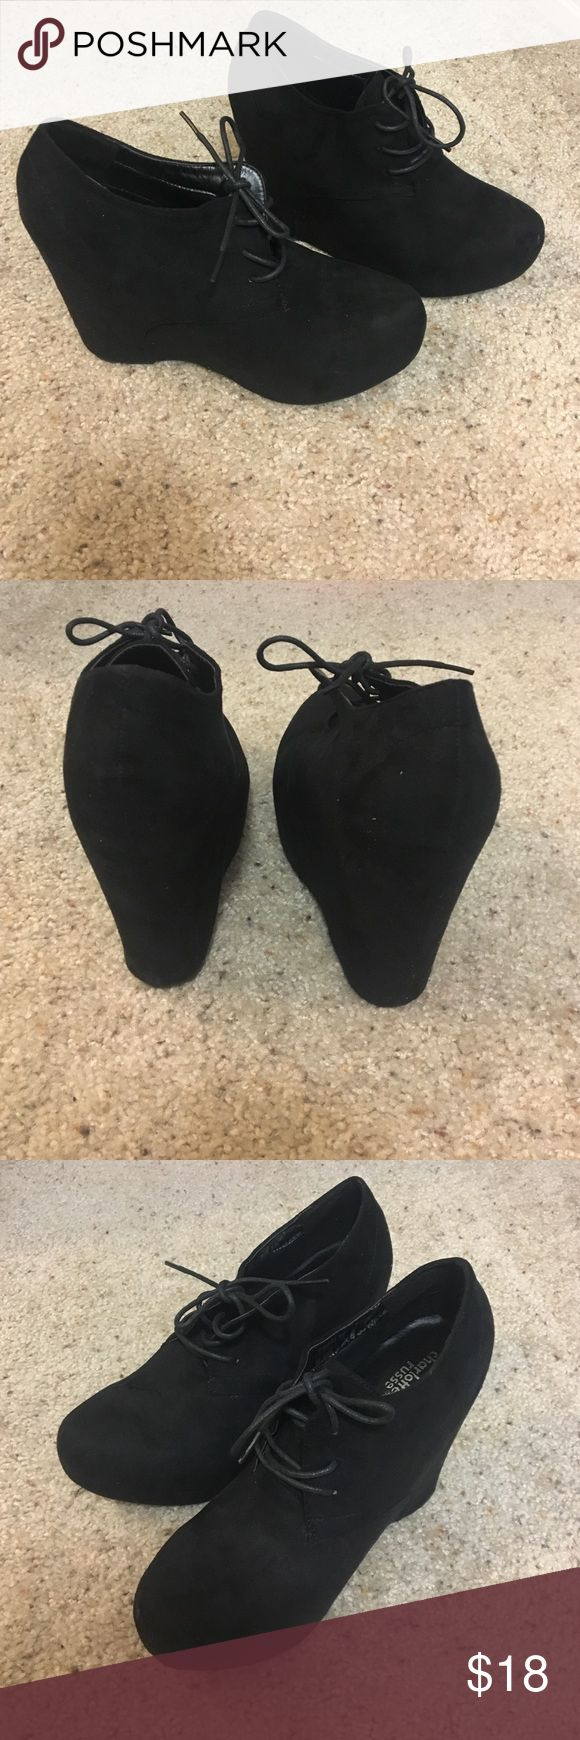 Black booties Size 10 booties! They go great with any outfit. Never worn these, still in the box because I have another pair just like it that I tend to wear instead. Shoes Ankle Boots & Booties